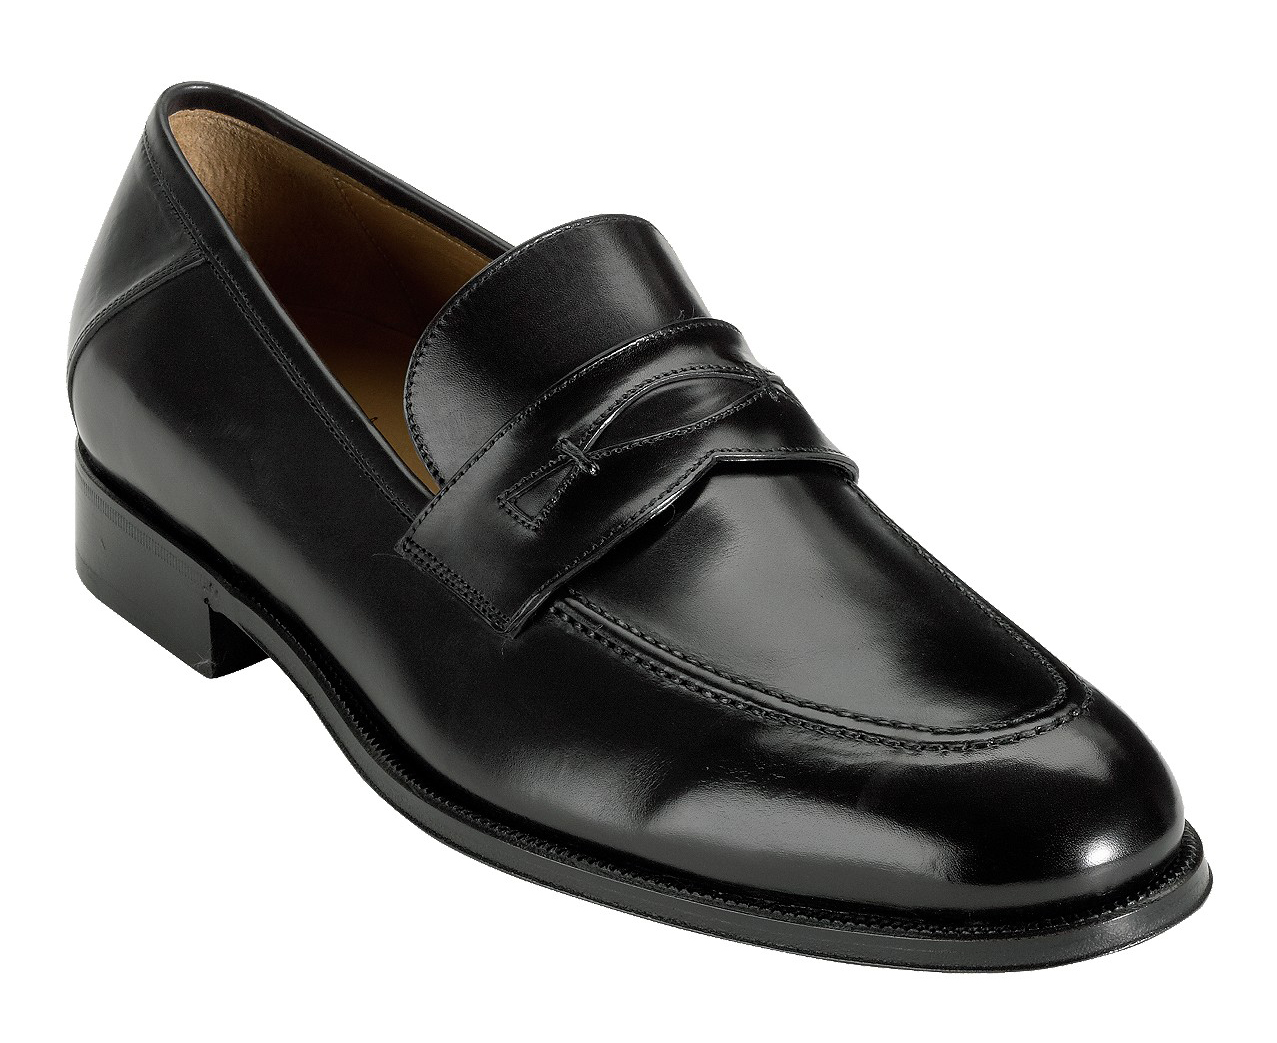 Cole Haan Men S Dress Shoes Black